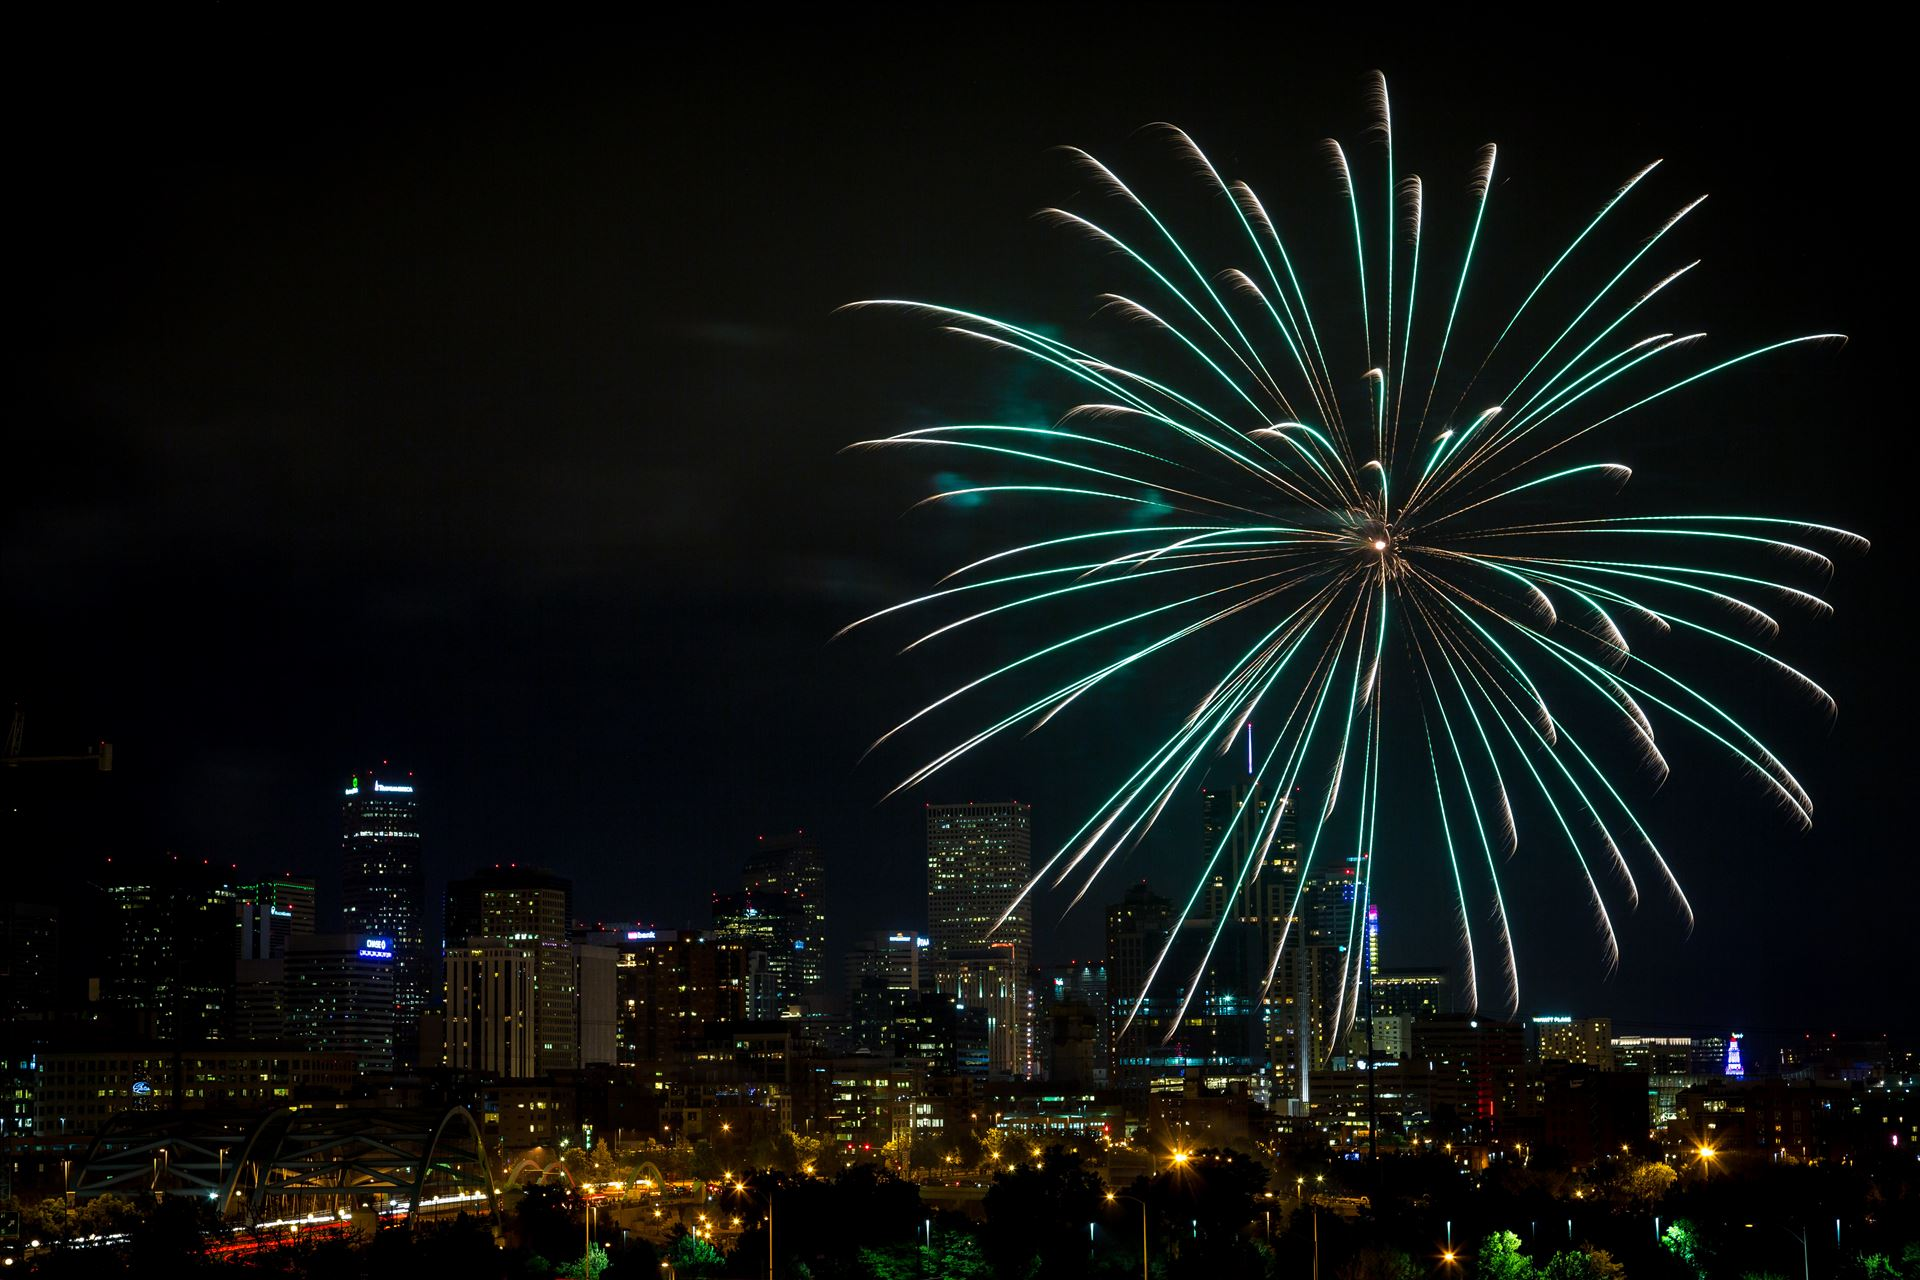 Elitch's Fireworks 2016 - 8 - Fireworks from Elitch Gardens, taken near Speer and Zuni in Denver, Colorado. by D Scott Smith